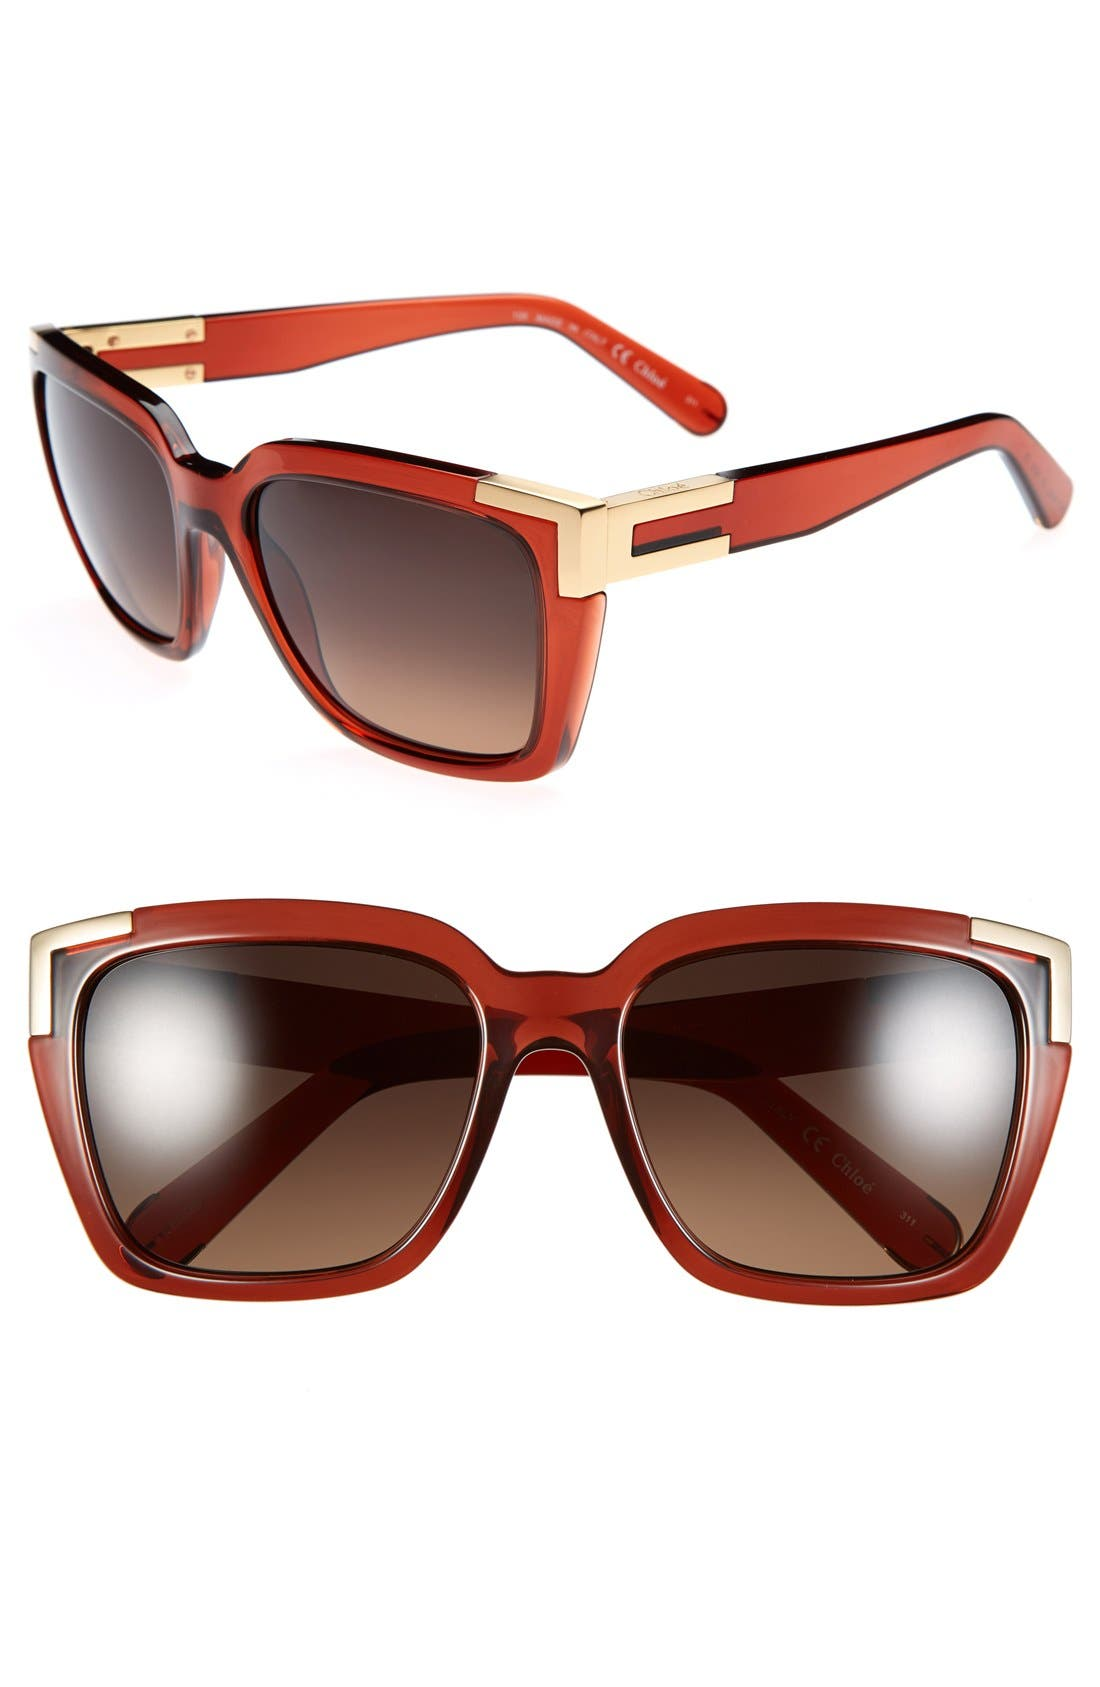 Main Image - Chloé 56mm Rectangle Sunglasses